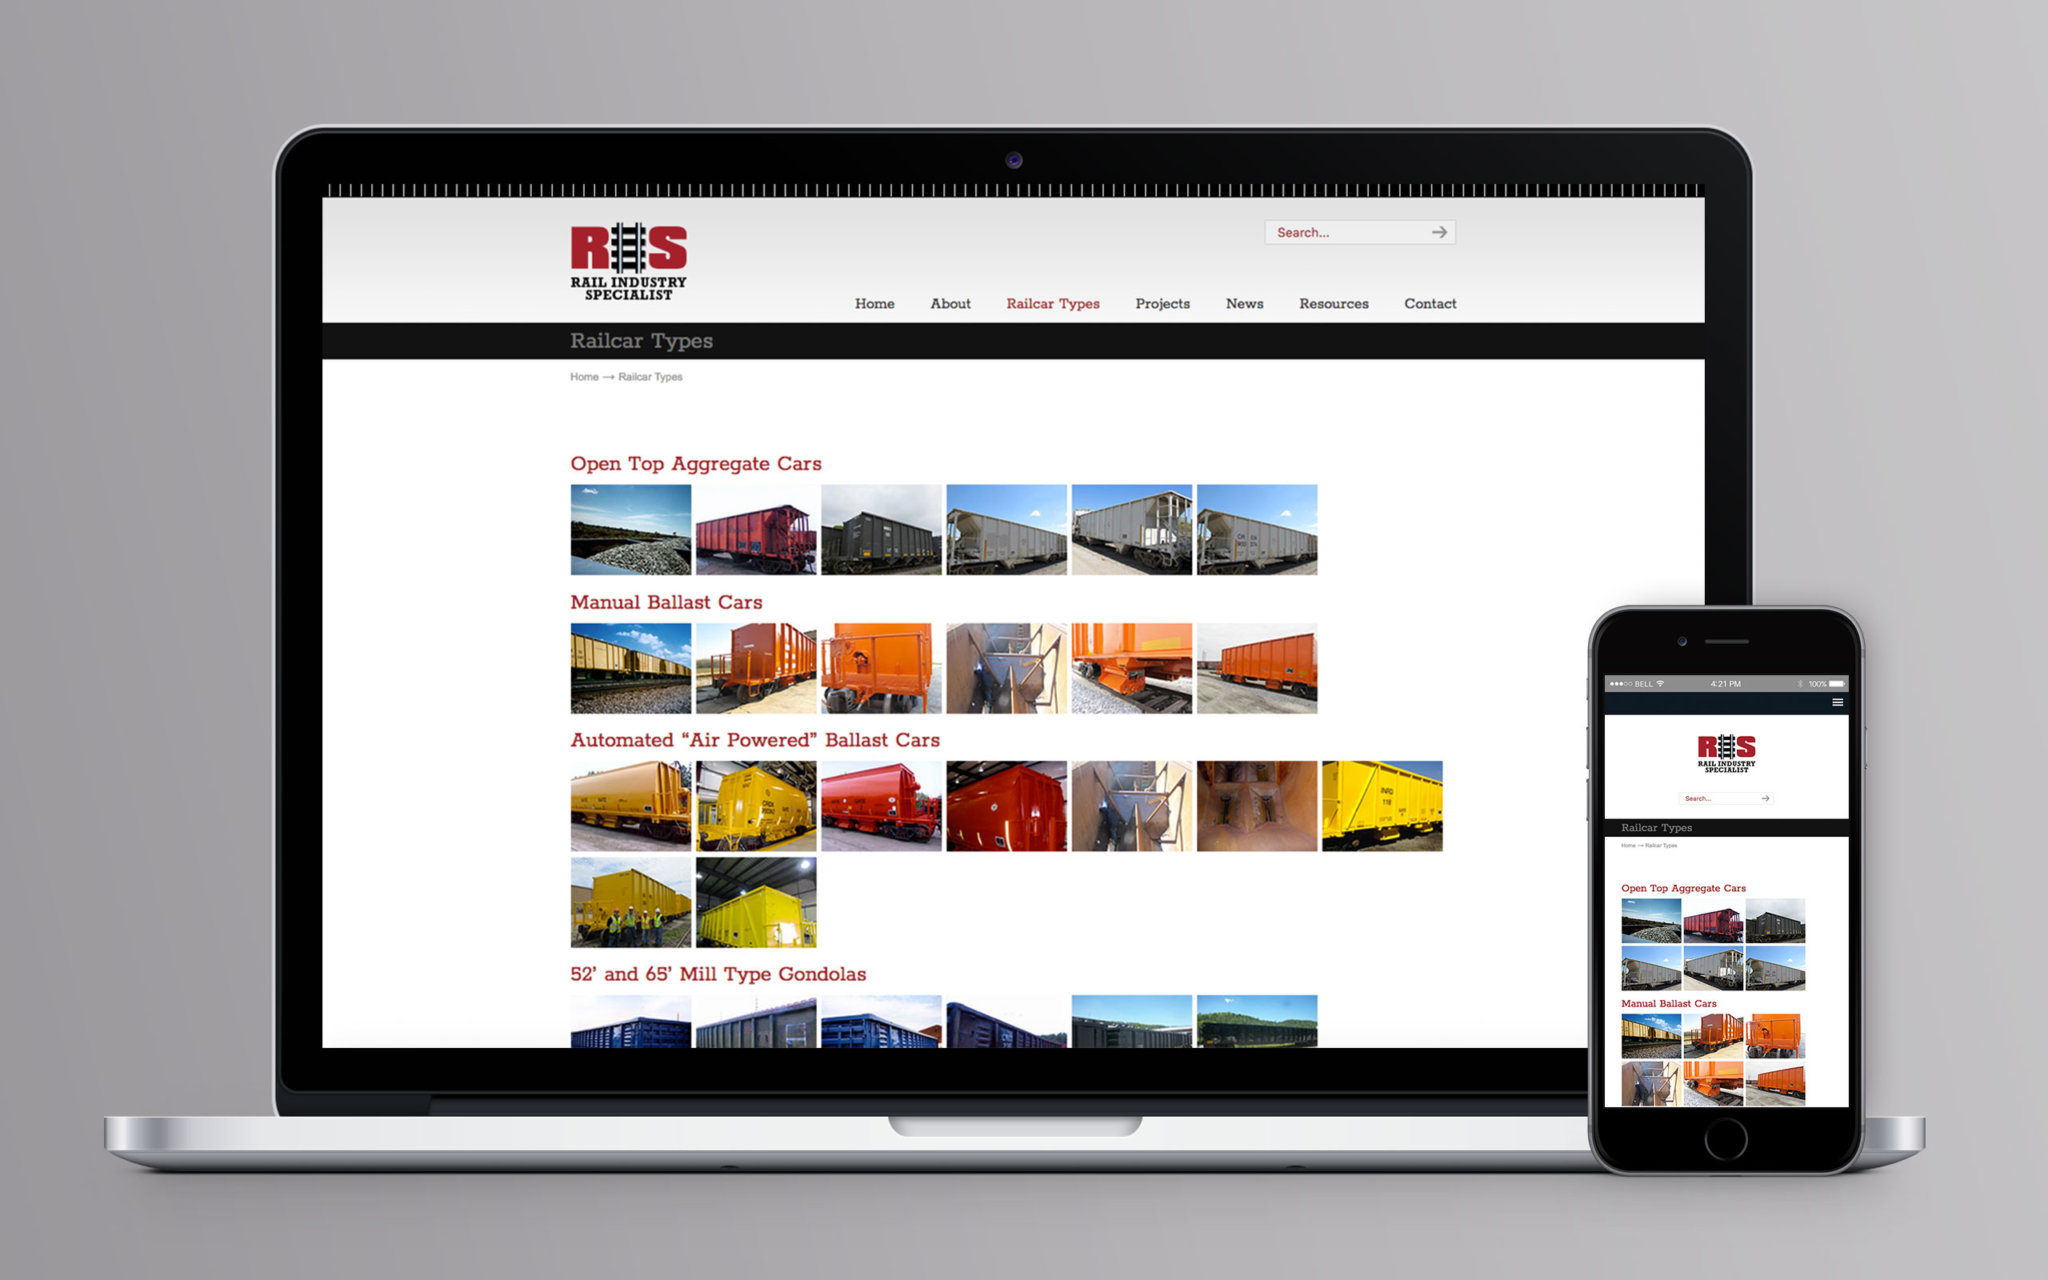 Rail Industry Specialist Website Railcar Types